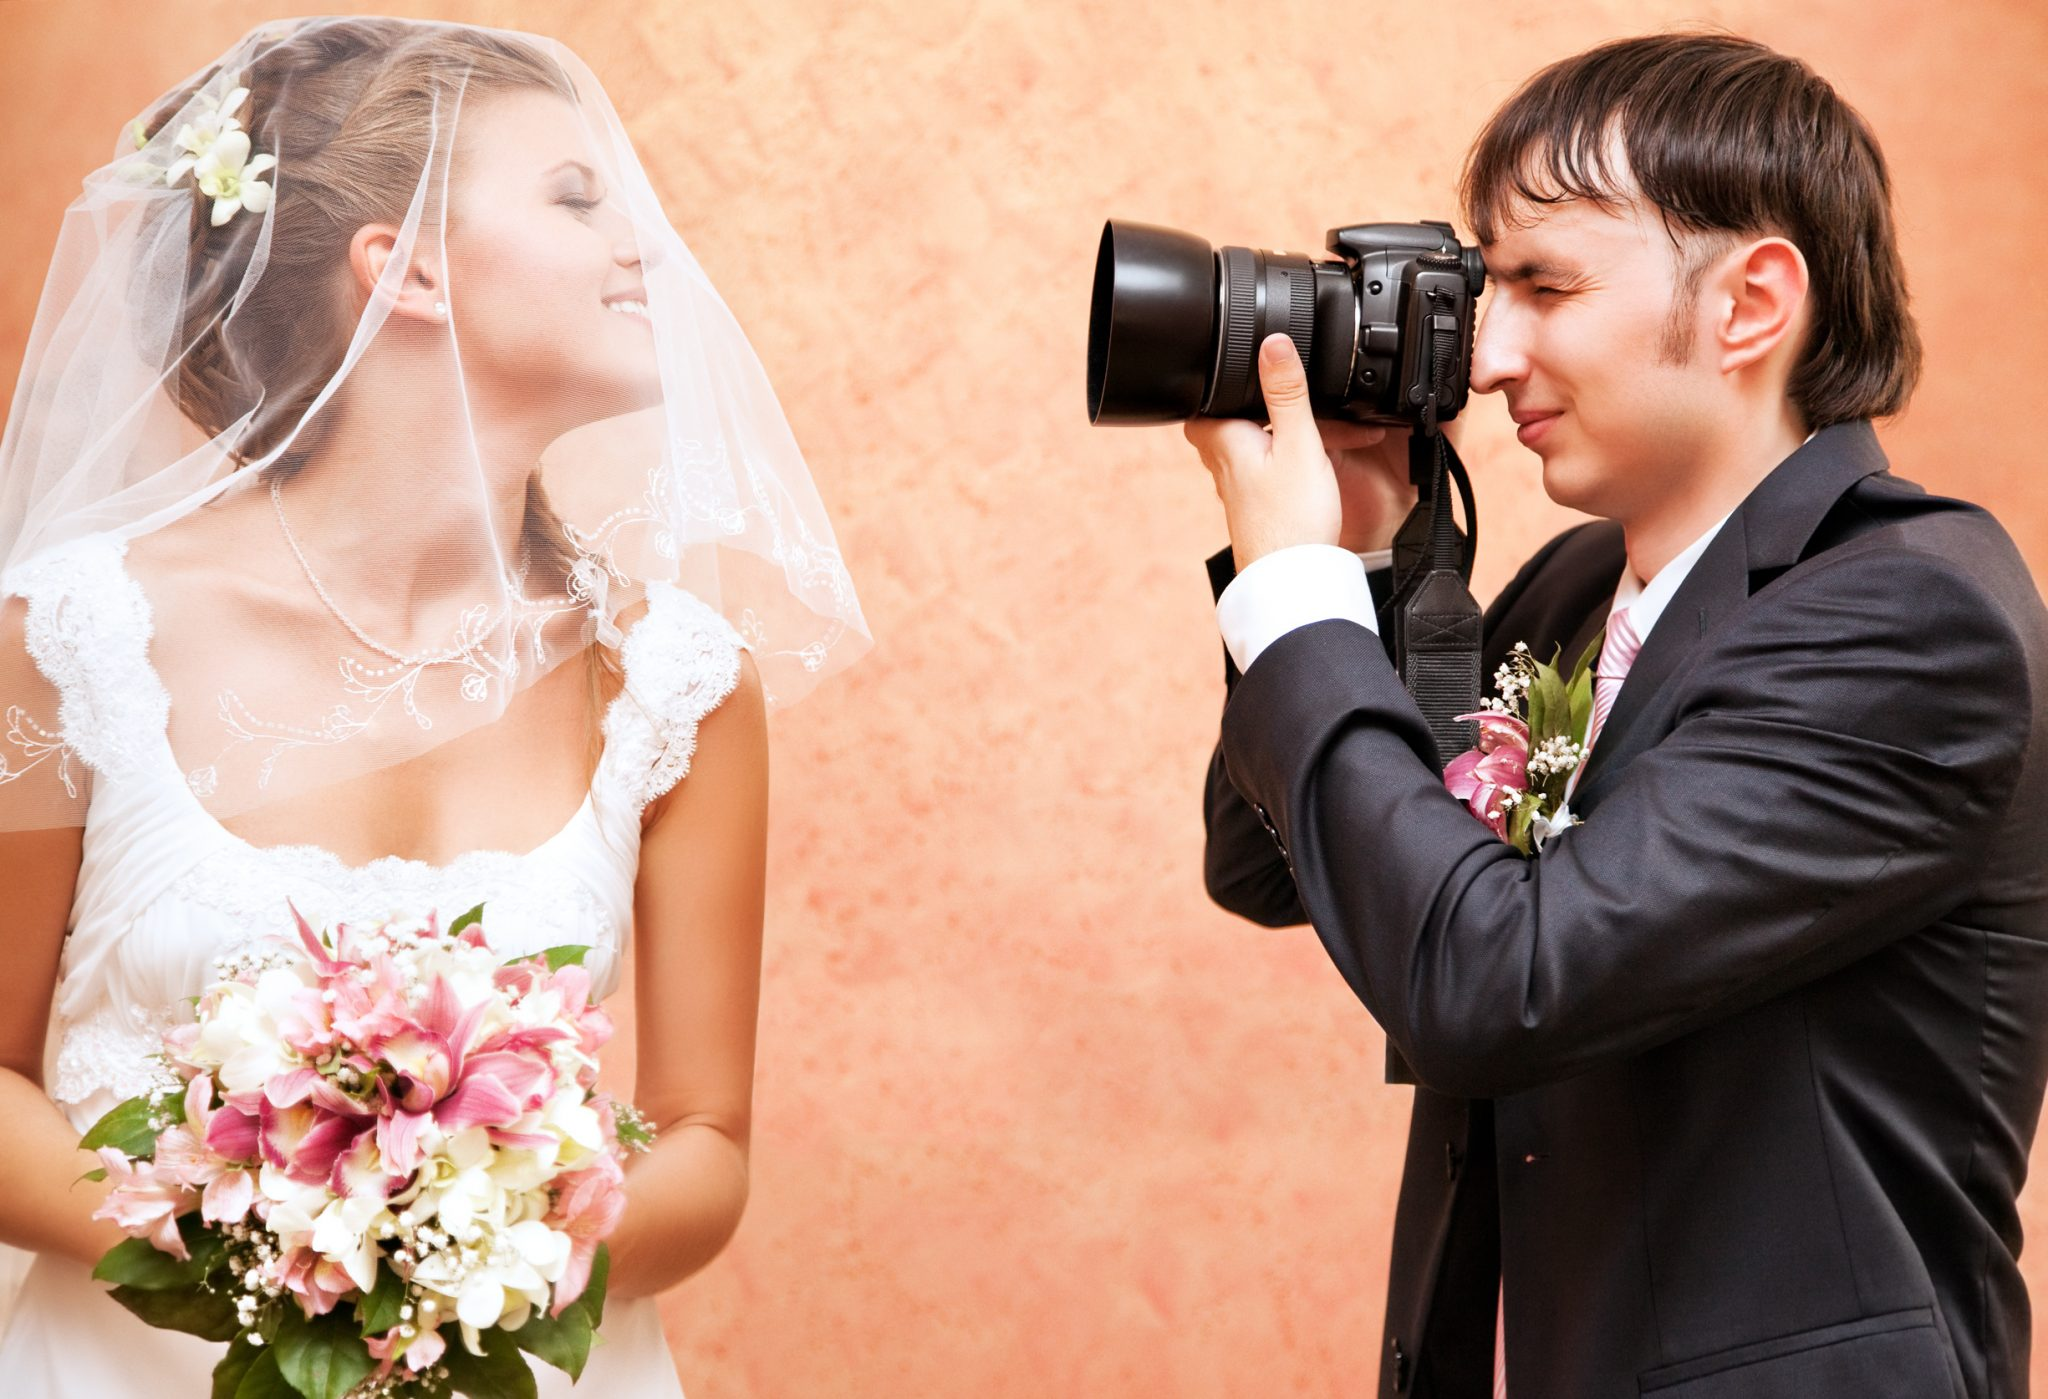 Man photographing a bride.